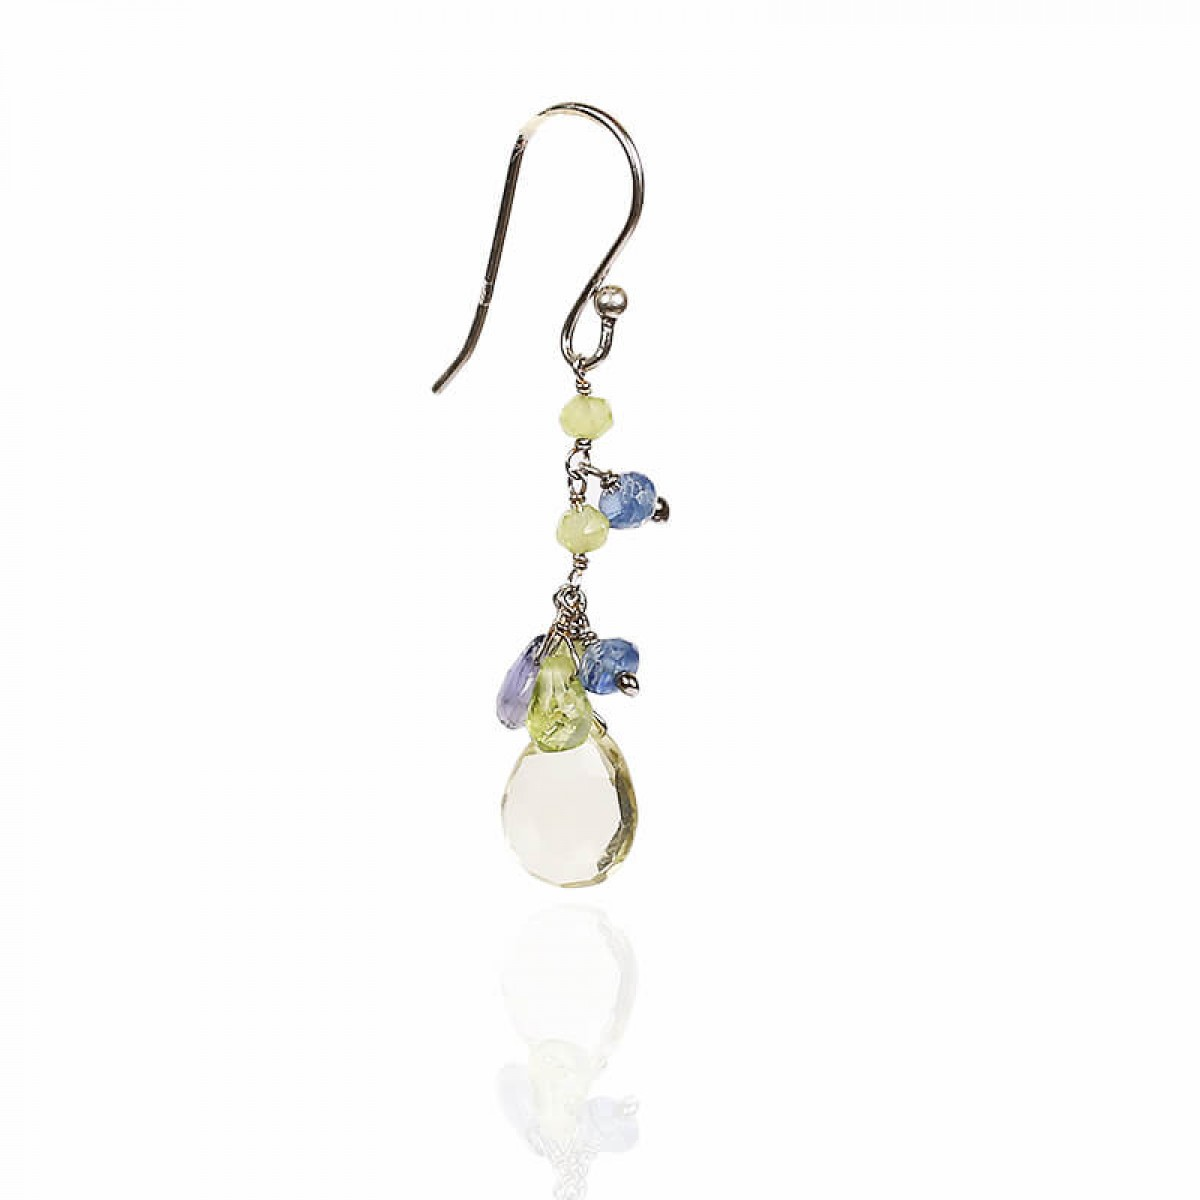 Gemstone Crystal Earrings - Peridot & Kyanite